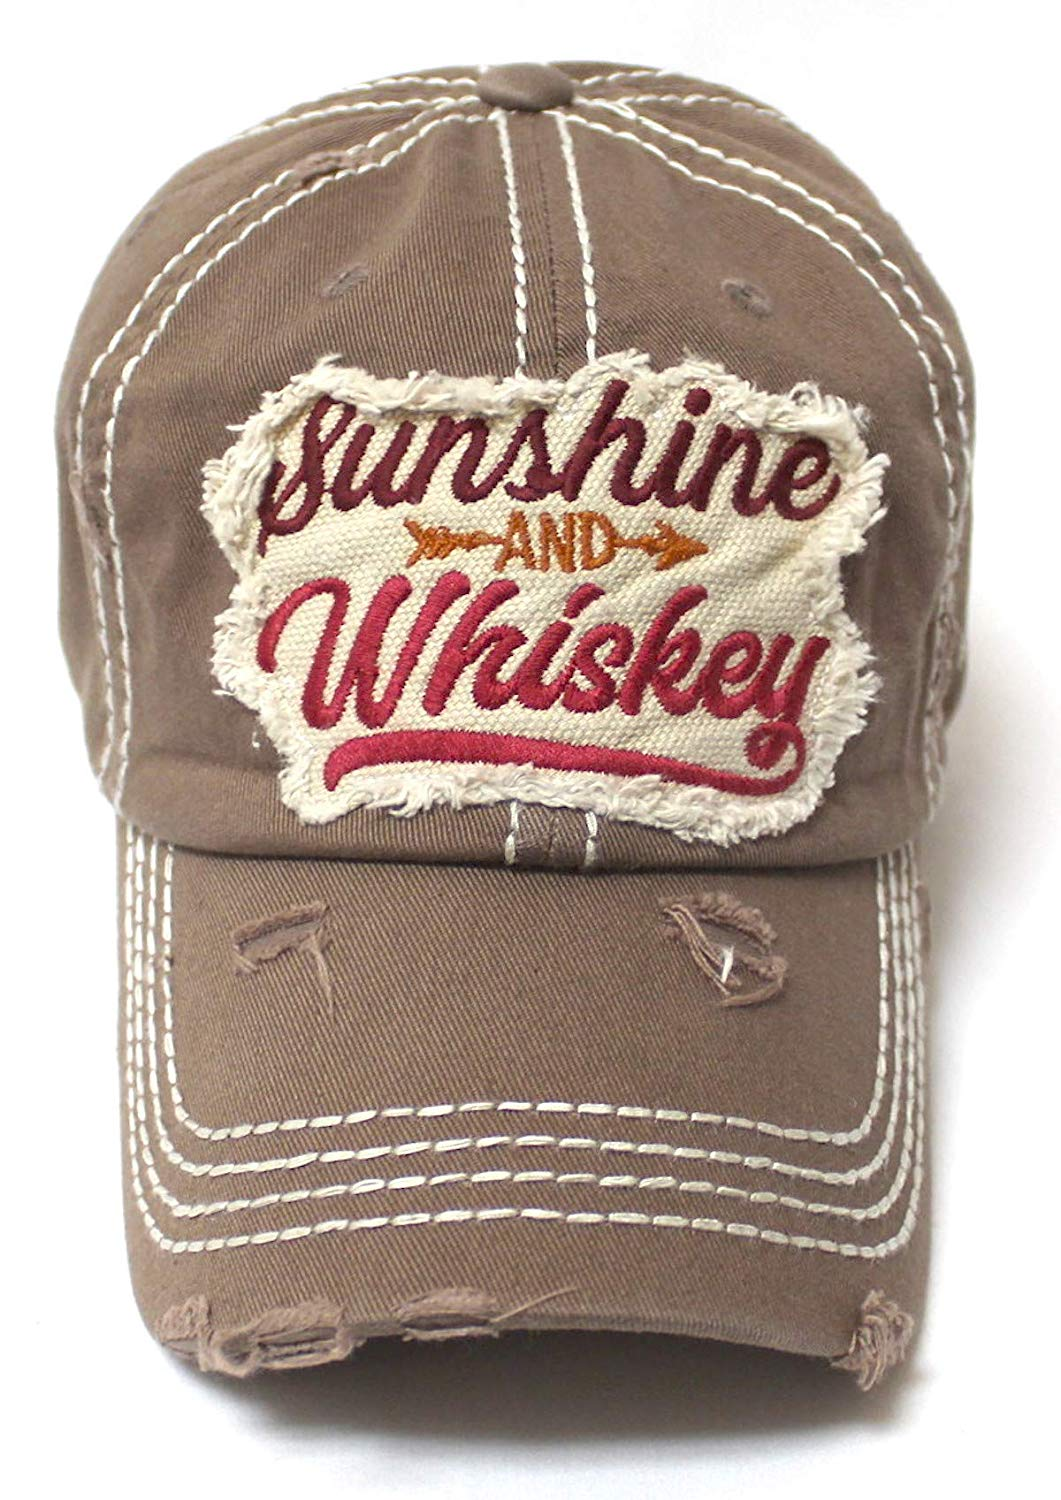 Sunshine and Whiskey Tribal Arrow Patch Embroidery Hat, Copper Brown - Caps 'N Vintage